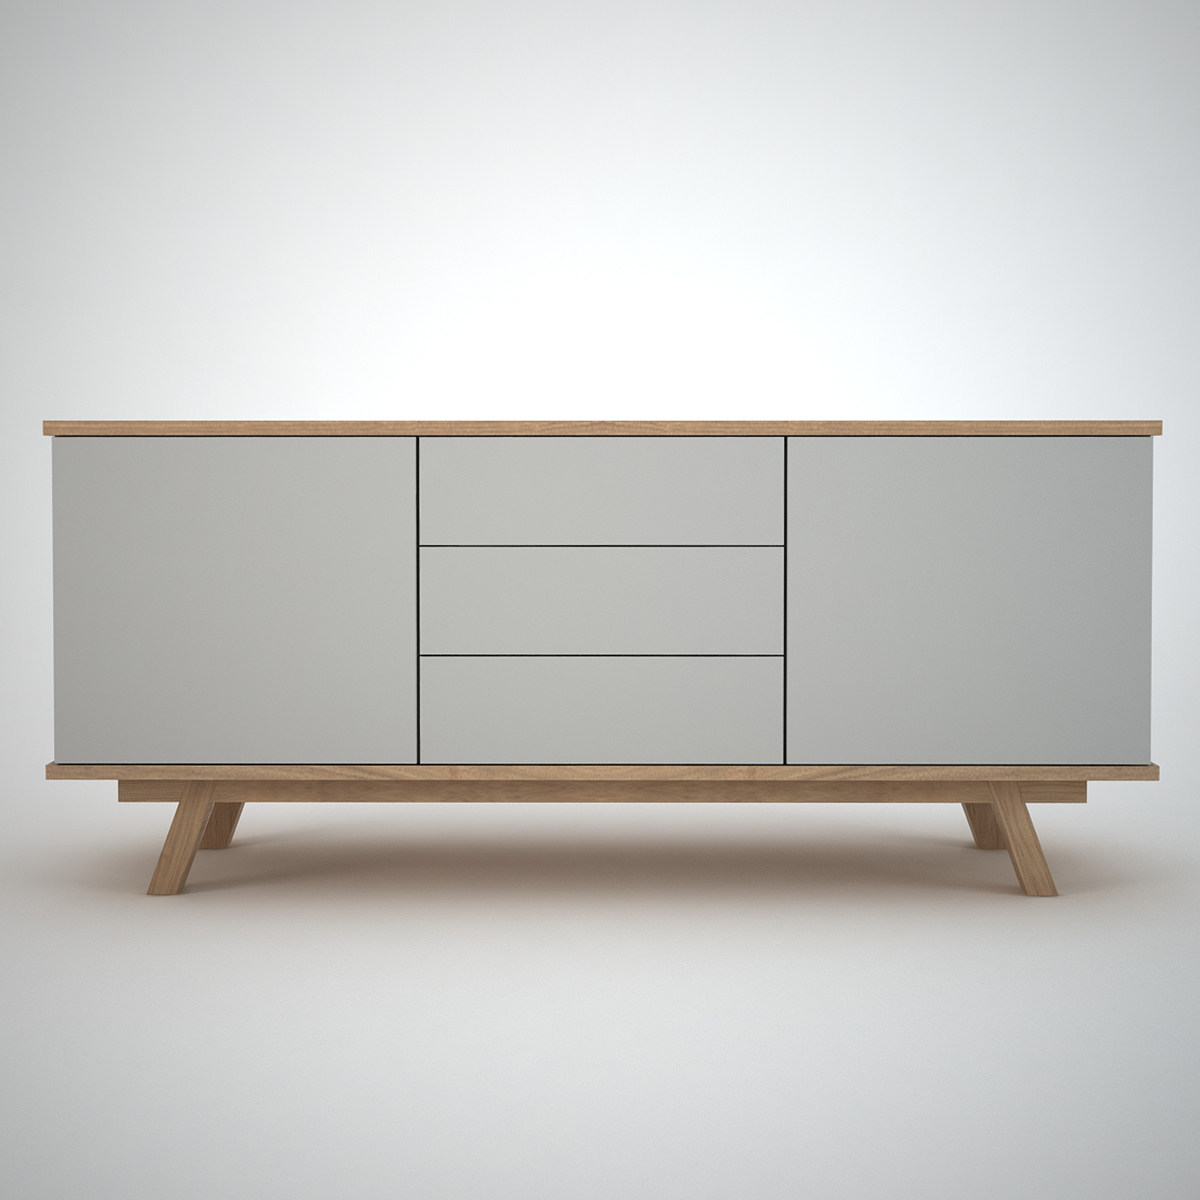 Ottawa Sideboard (2+3) Clay Join Furniture